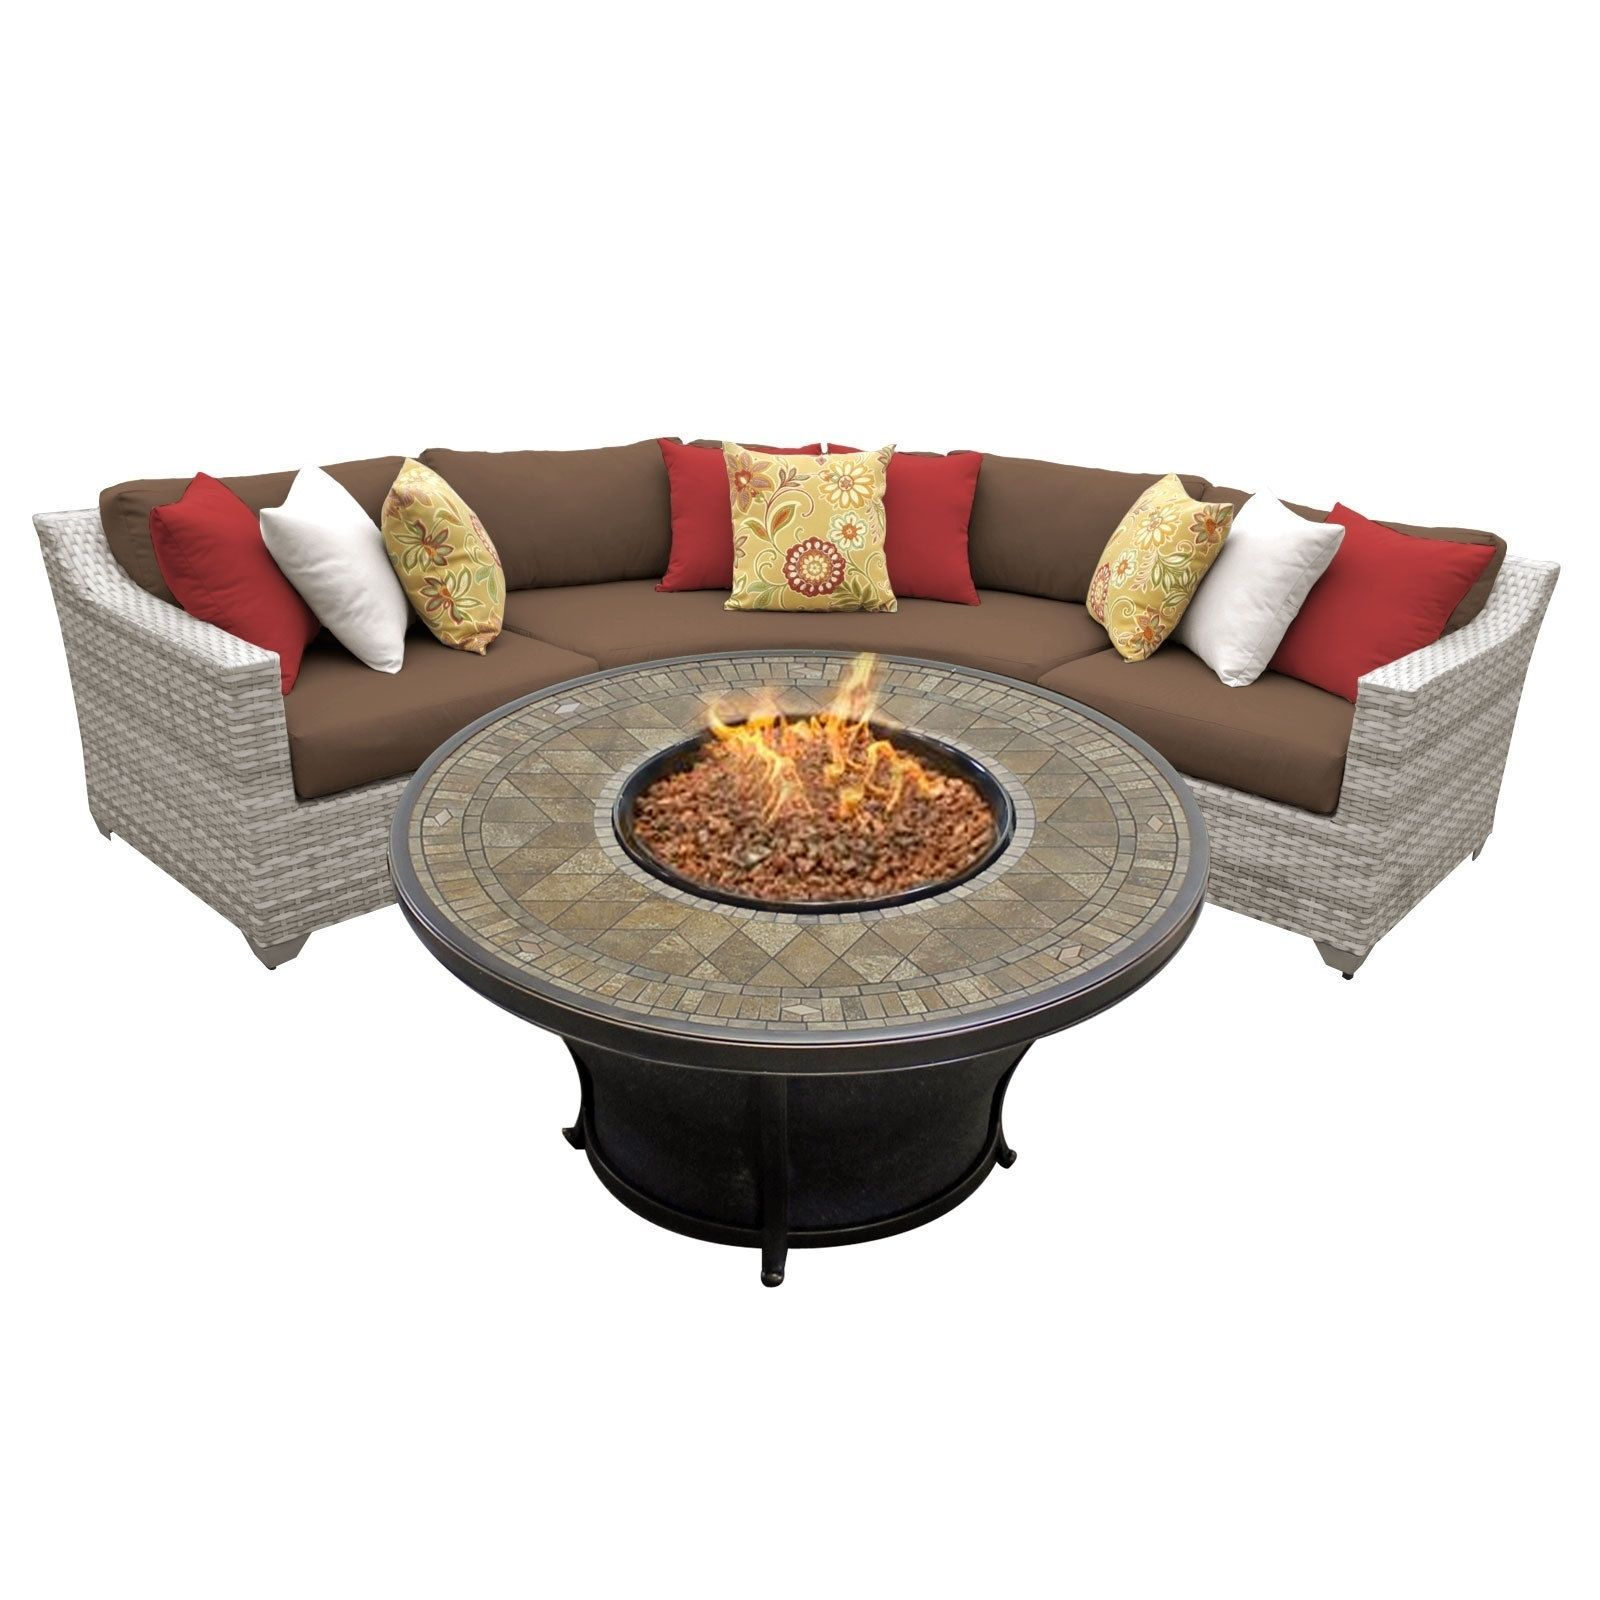 Catamaran 4 Piece Outdoor Patio Wicker Sectional With Fire